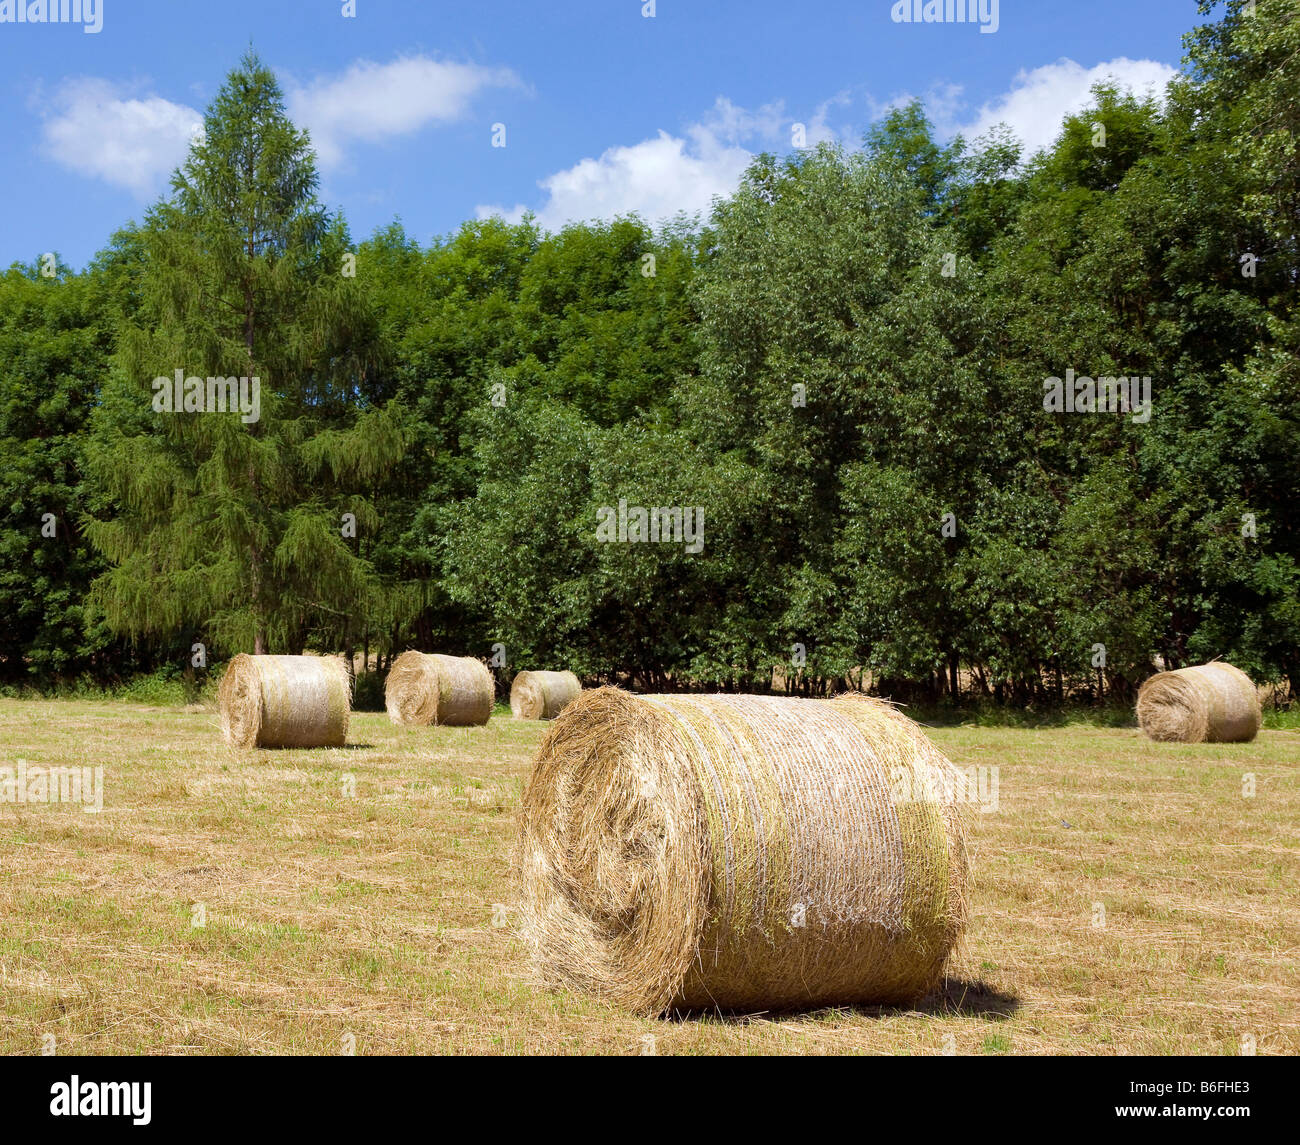 Field and forest near Muehlhausen, Thuringia, Germany, Europe Stock Photo